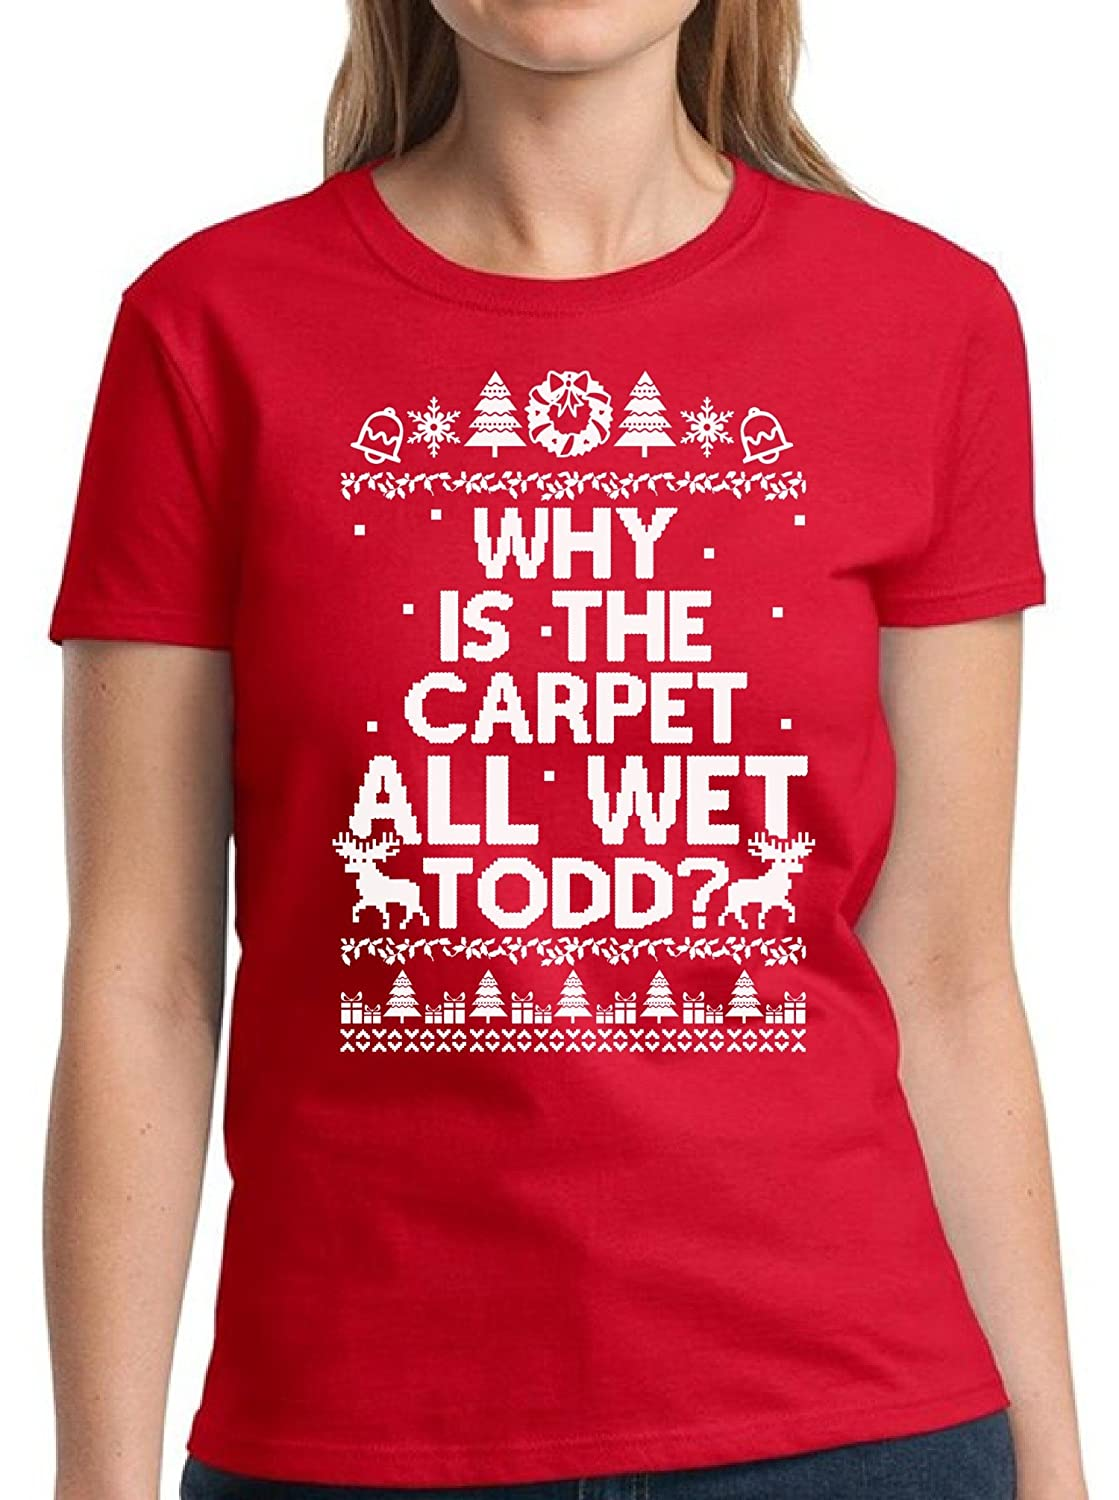 Pekatees Why is The Carpet All Wet Todd Shirt for Women Why is The Carpet All Wet Todd Tshirt Funny Margo Todd Shirt